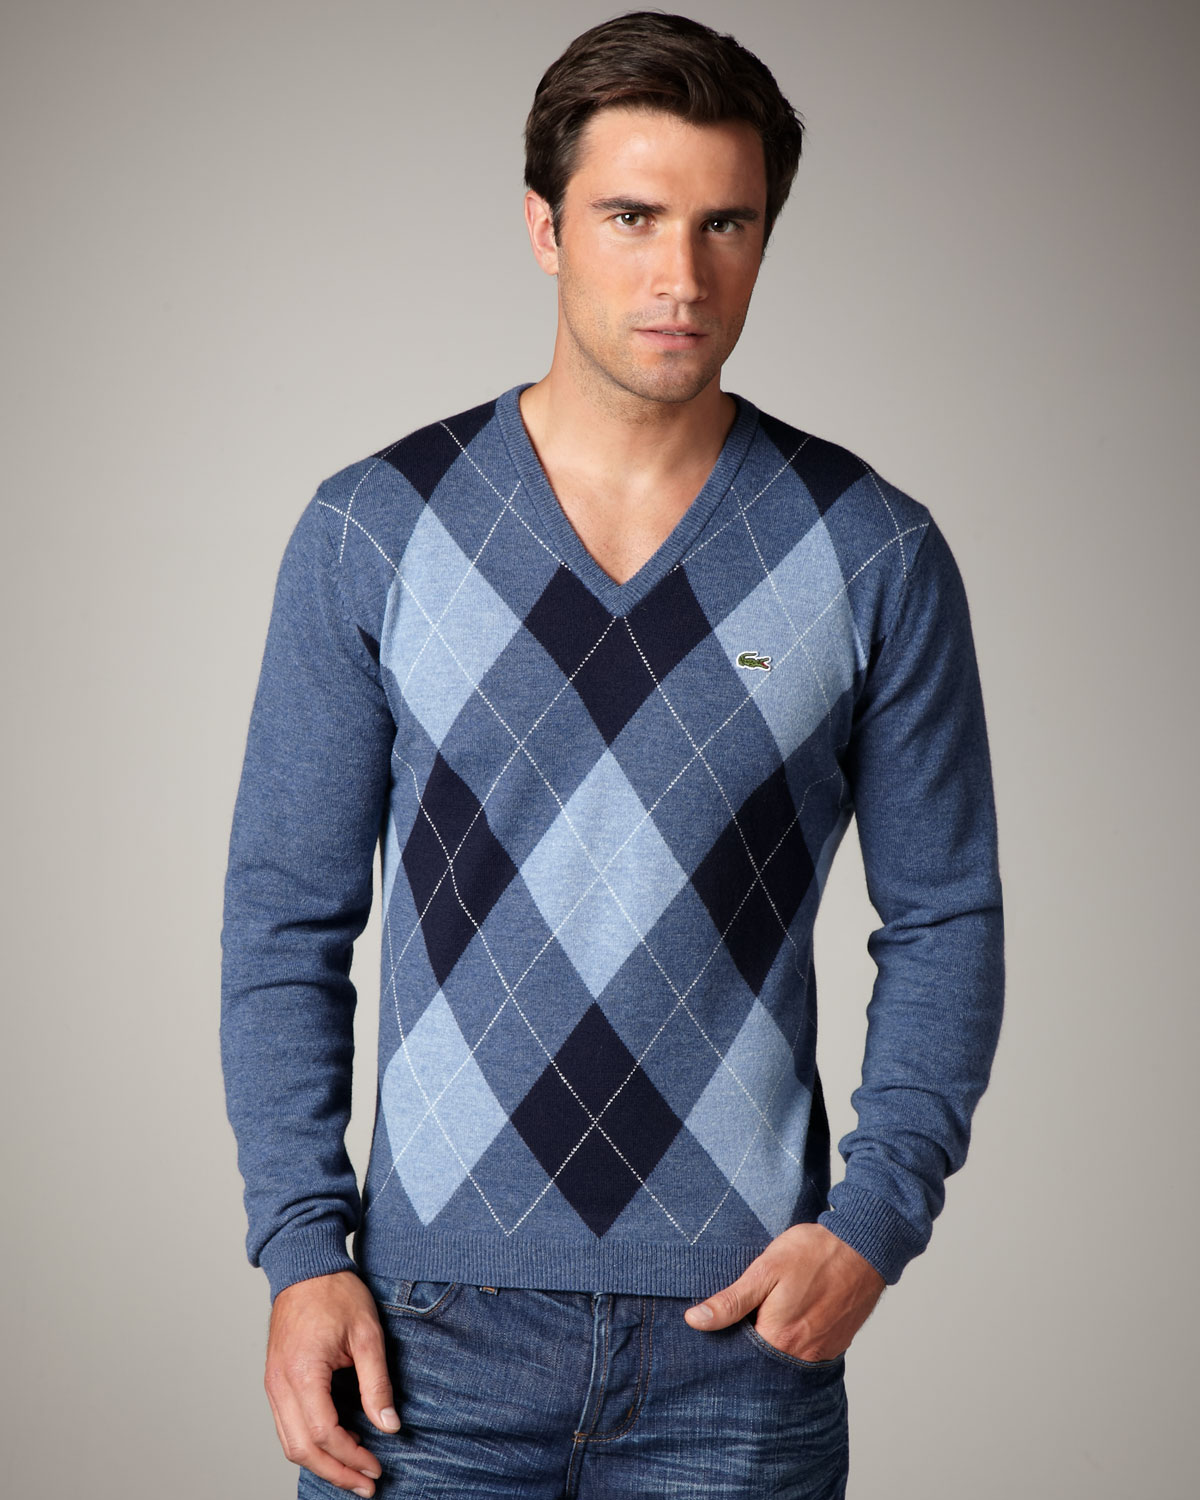 How to look good in the argyle sweater - StyleSkier.com